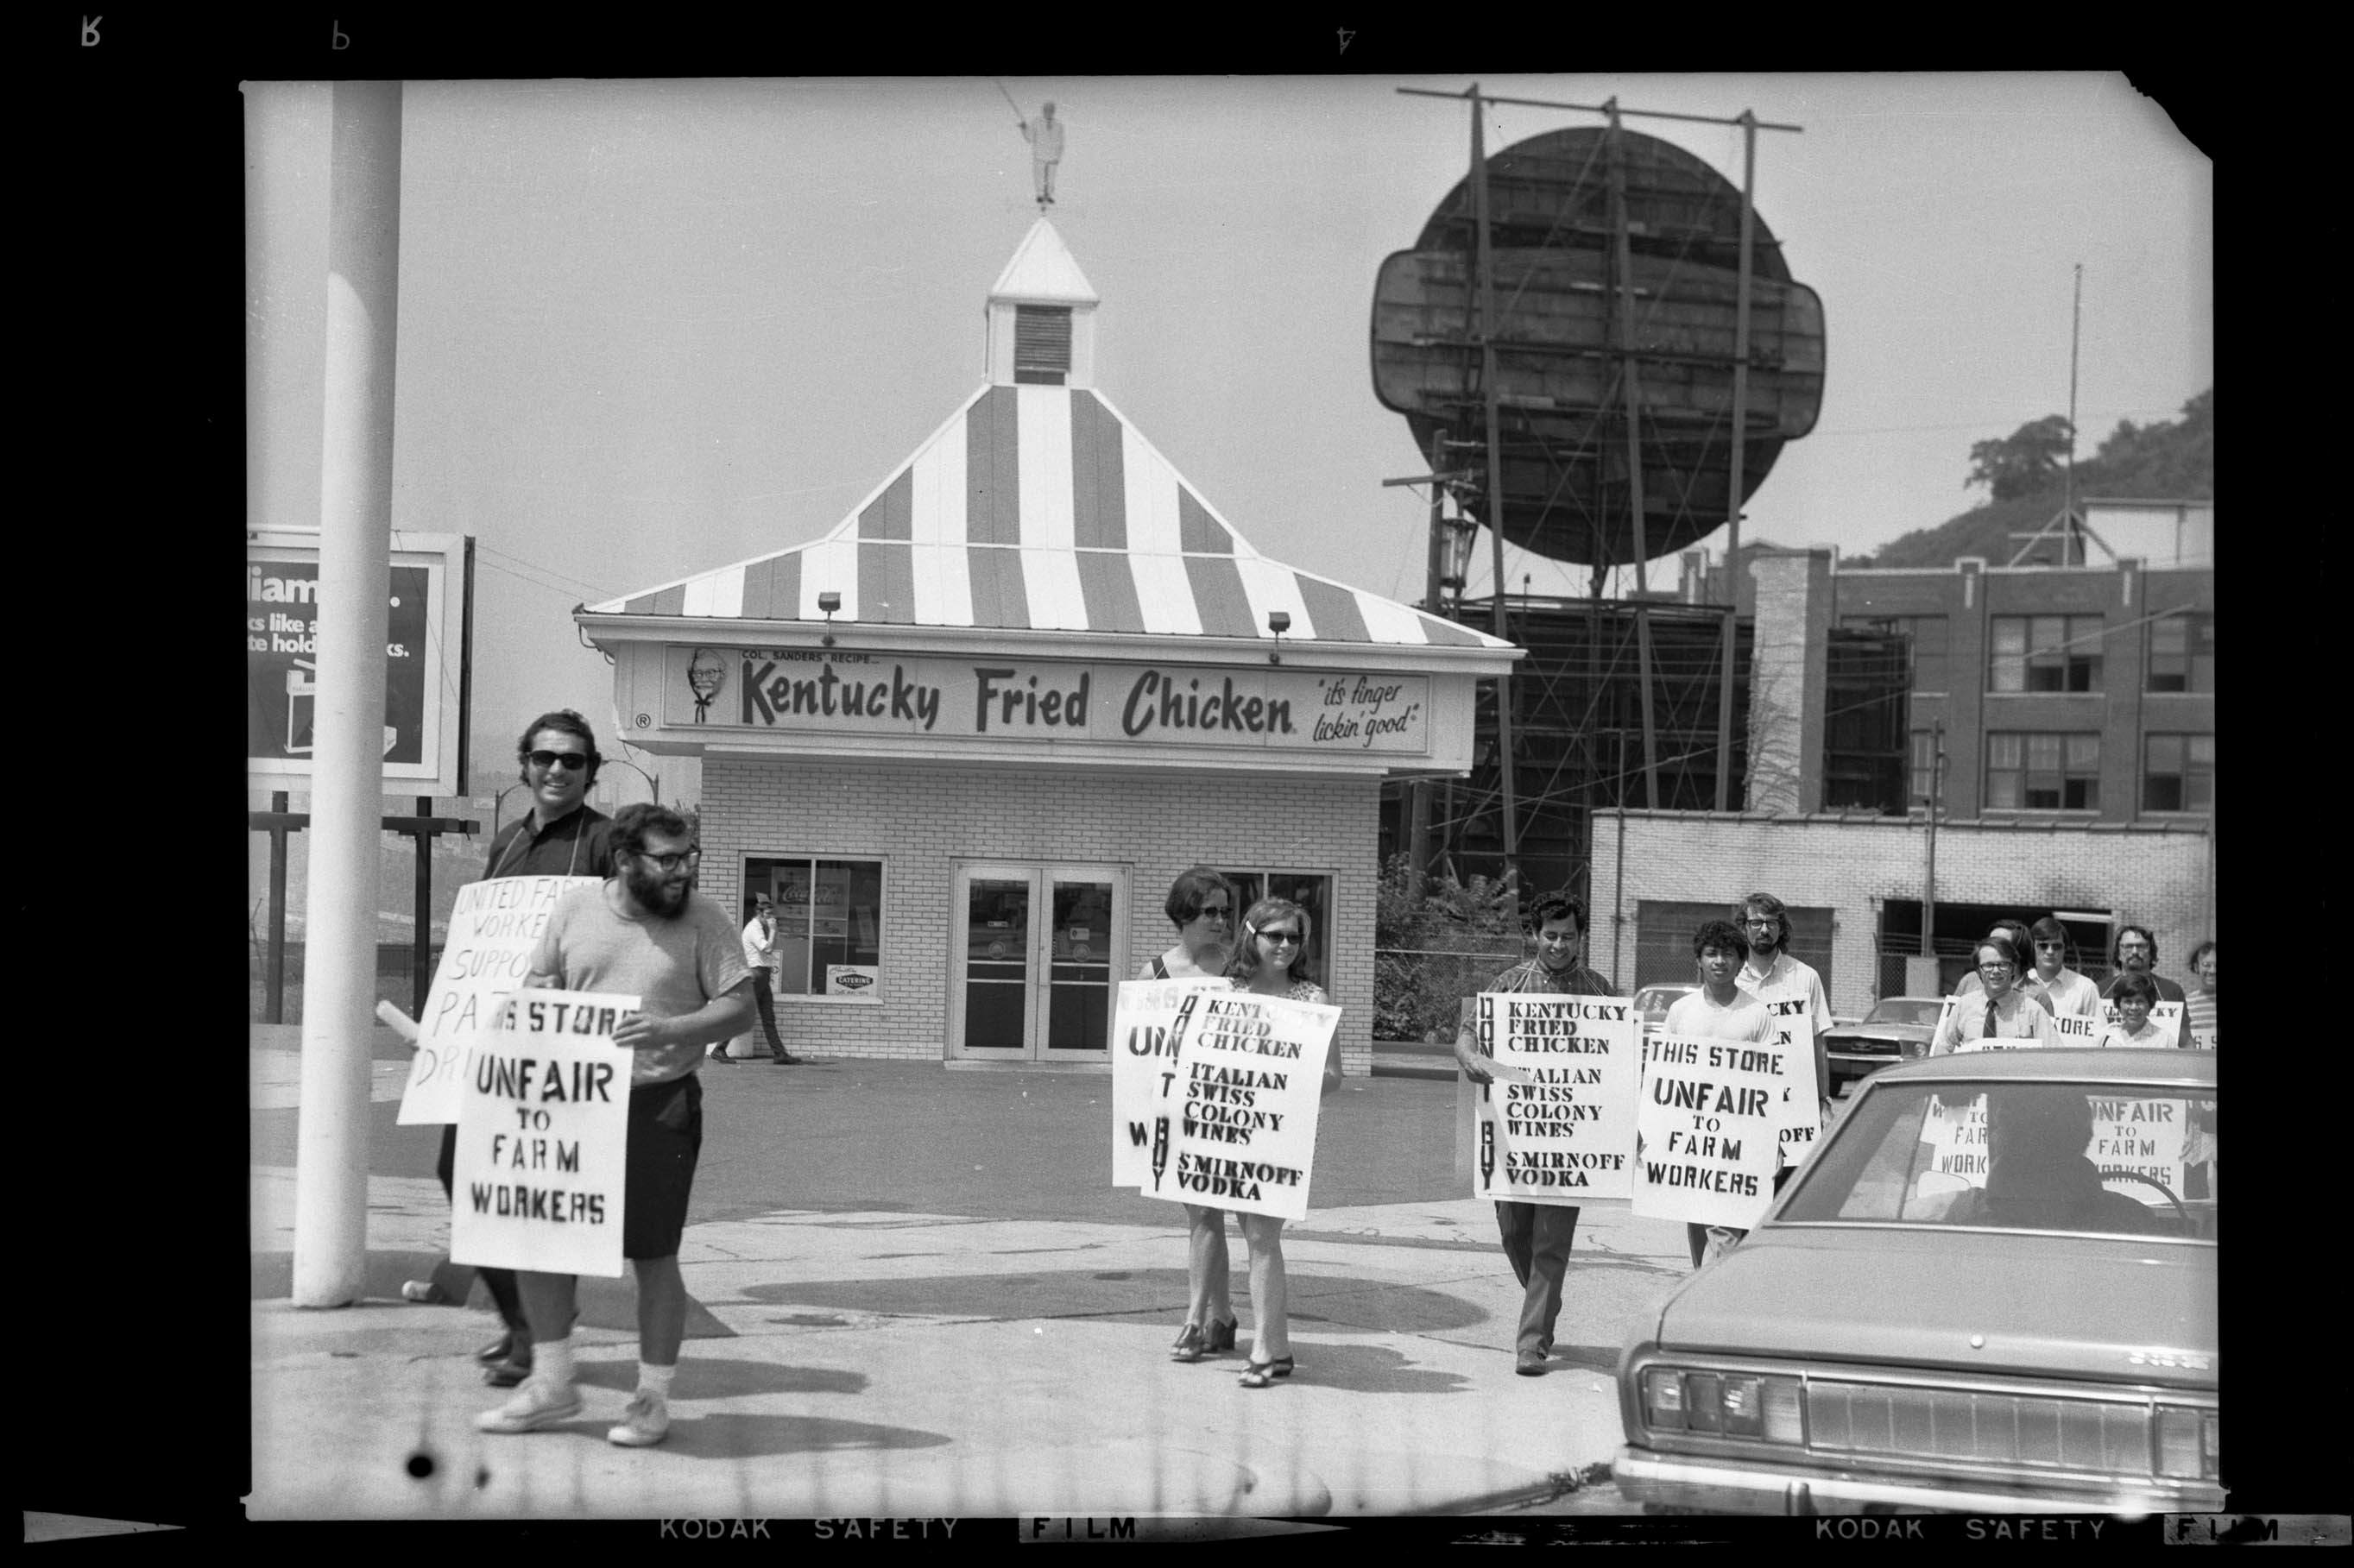 United Farm Workers protesters with sandwich boards reading